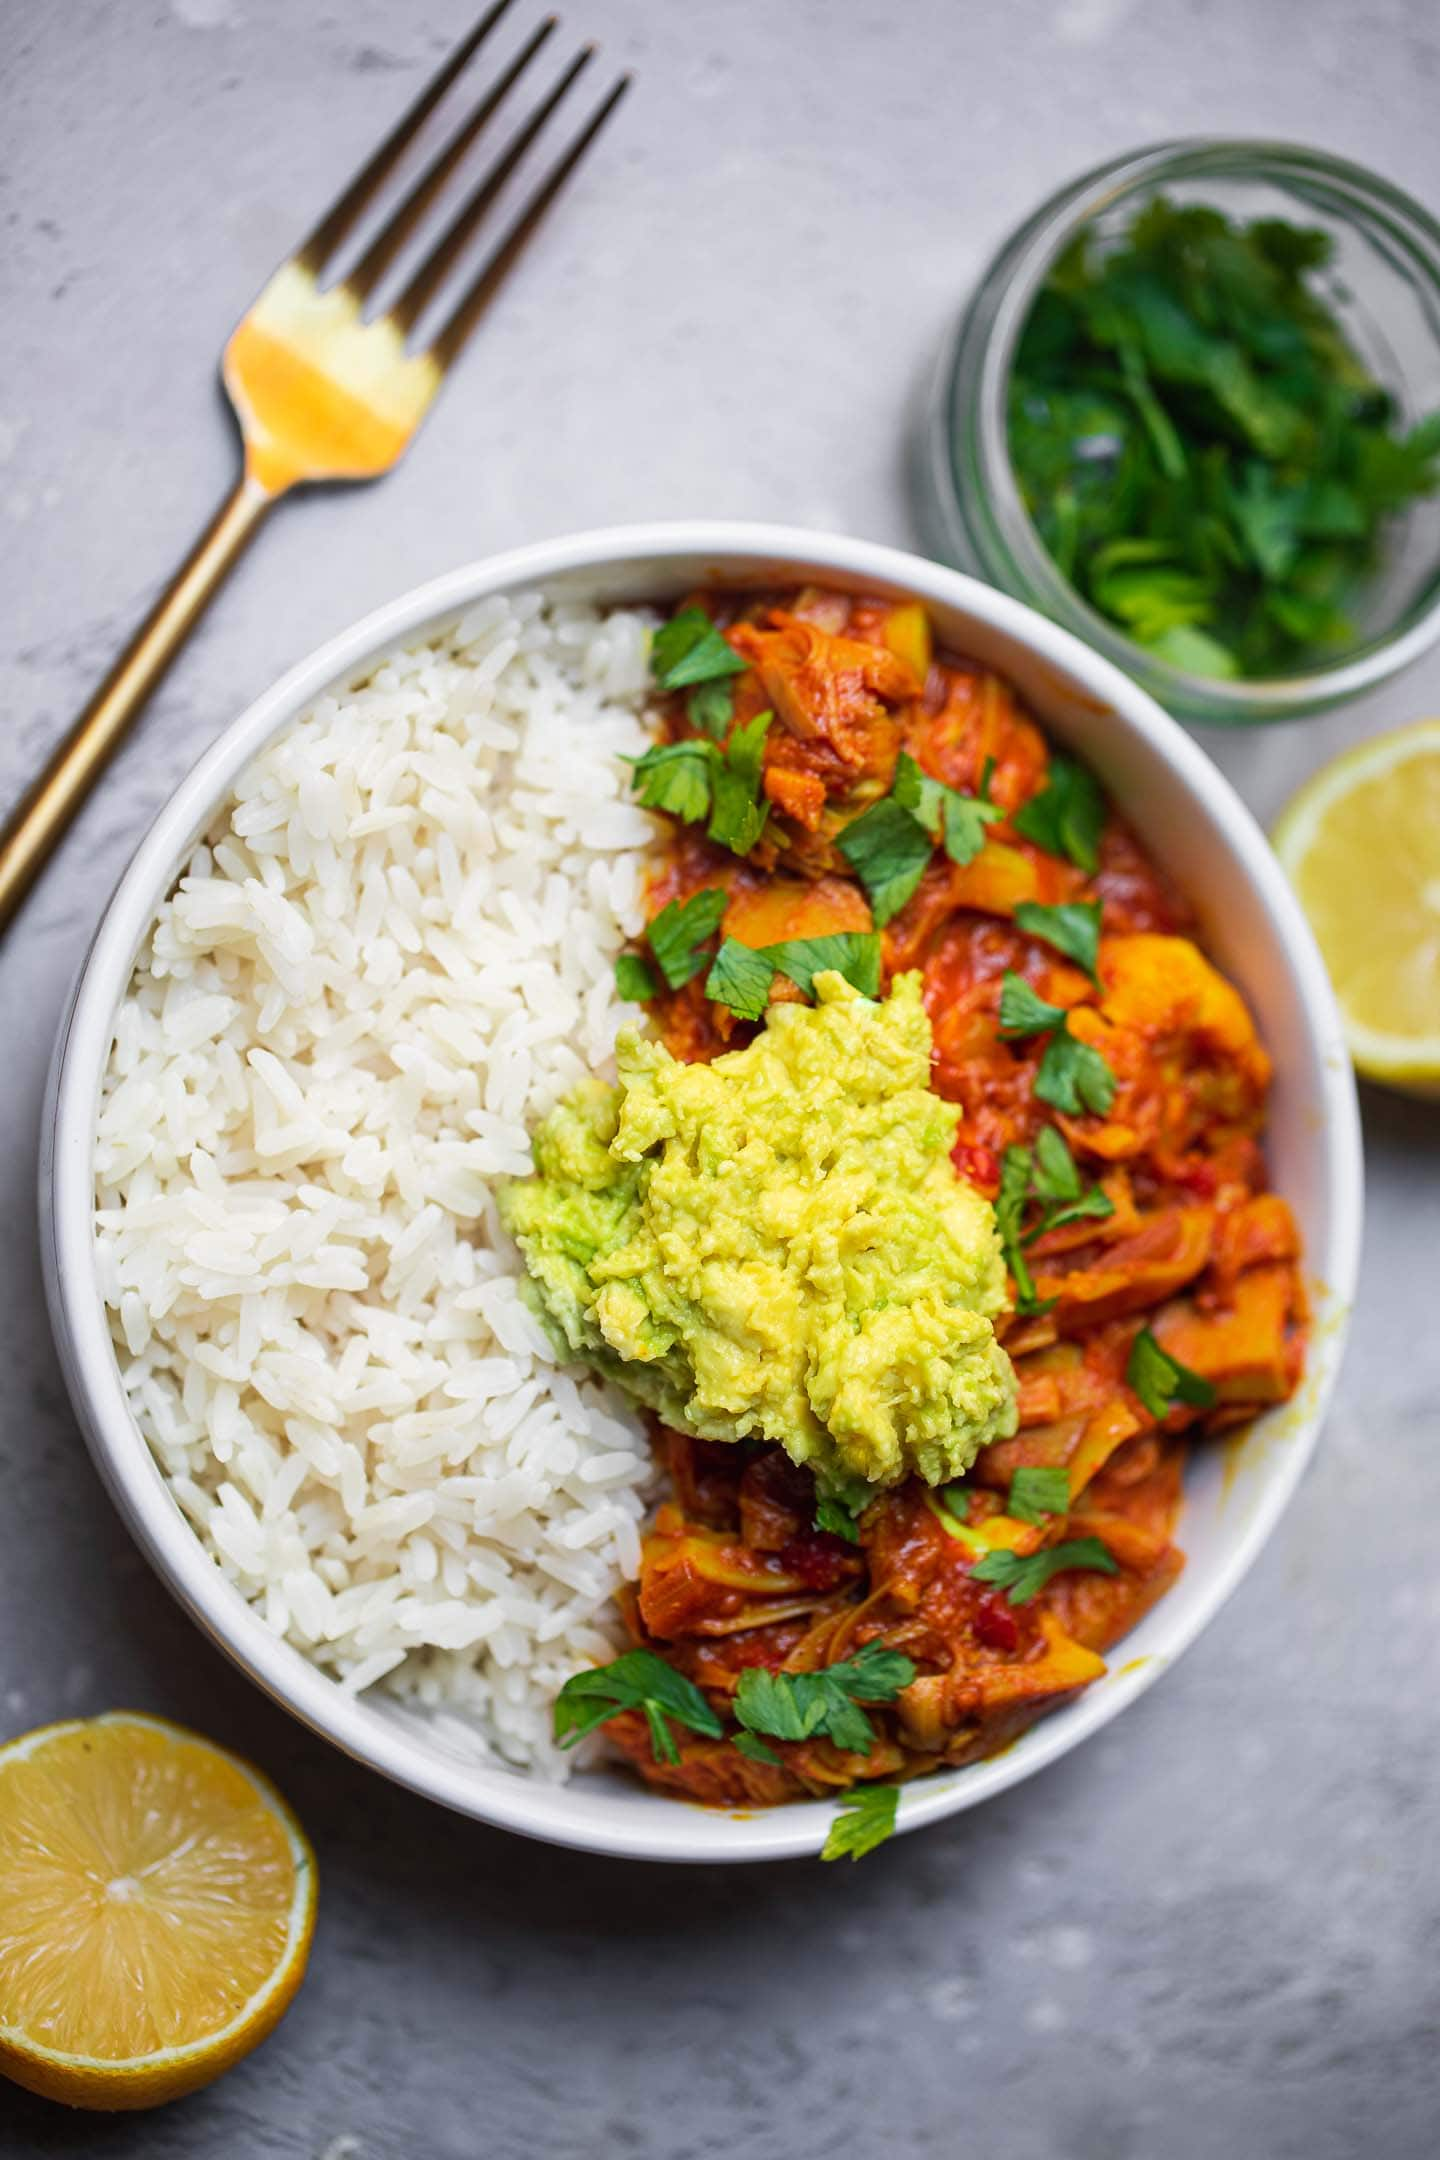 Vegan jackfruit curry in a bowl with rice and avocado